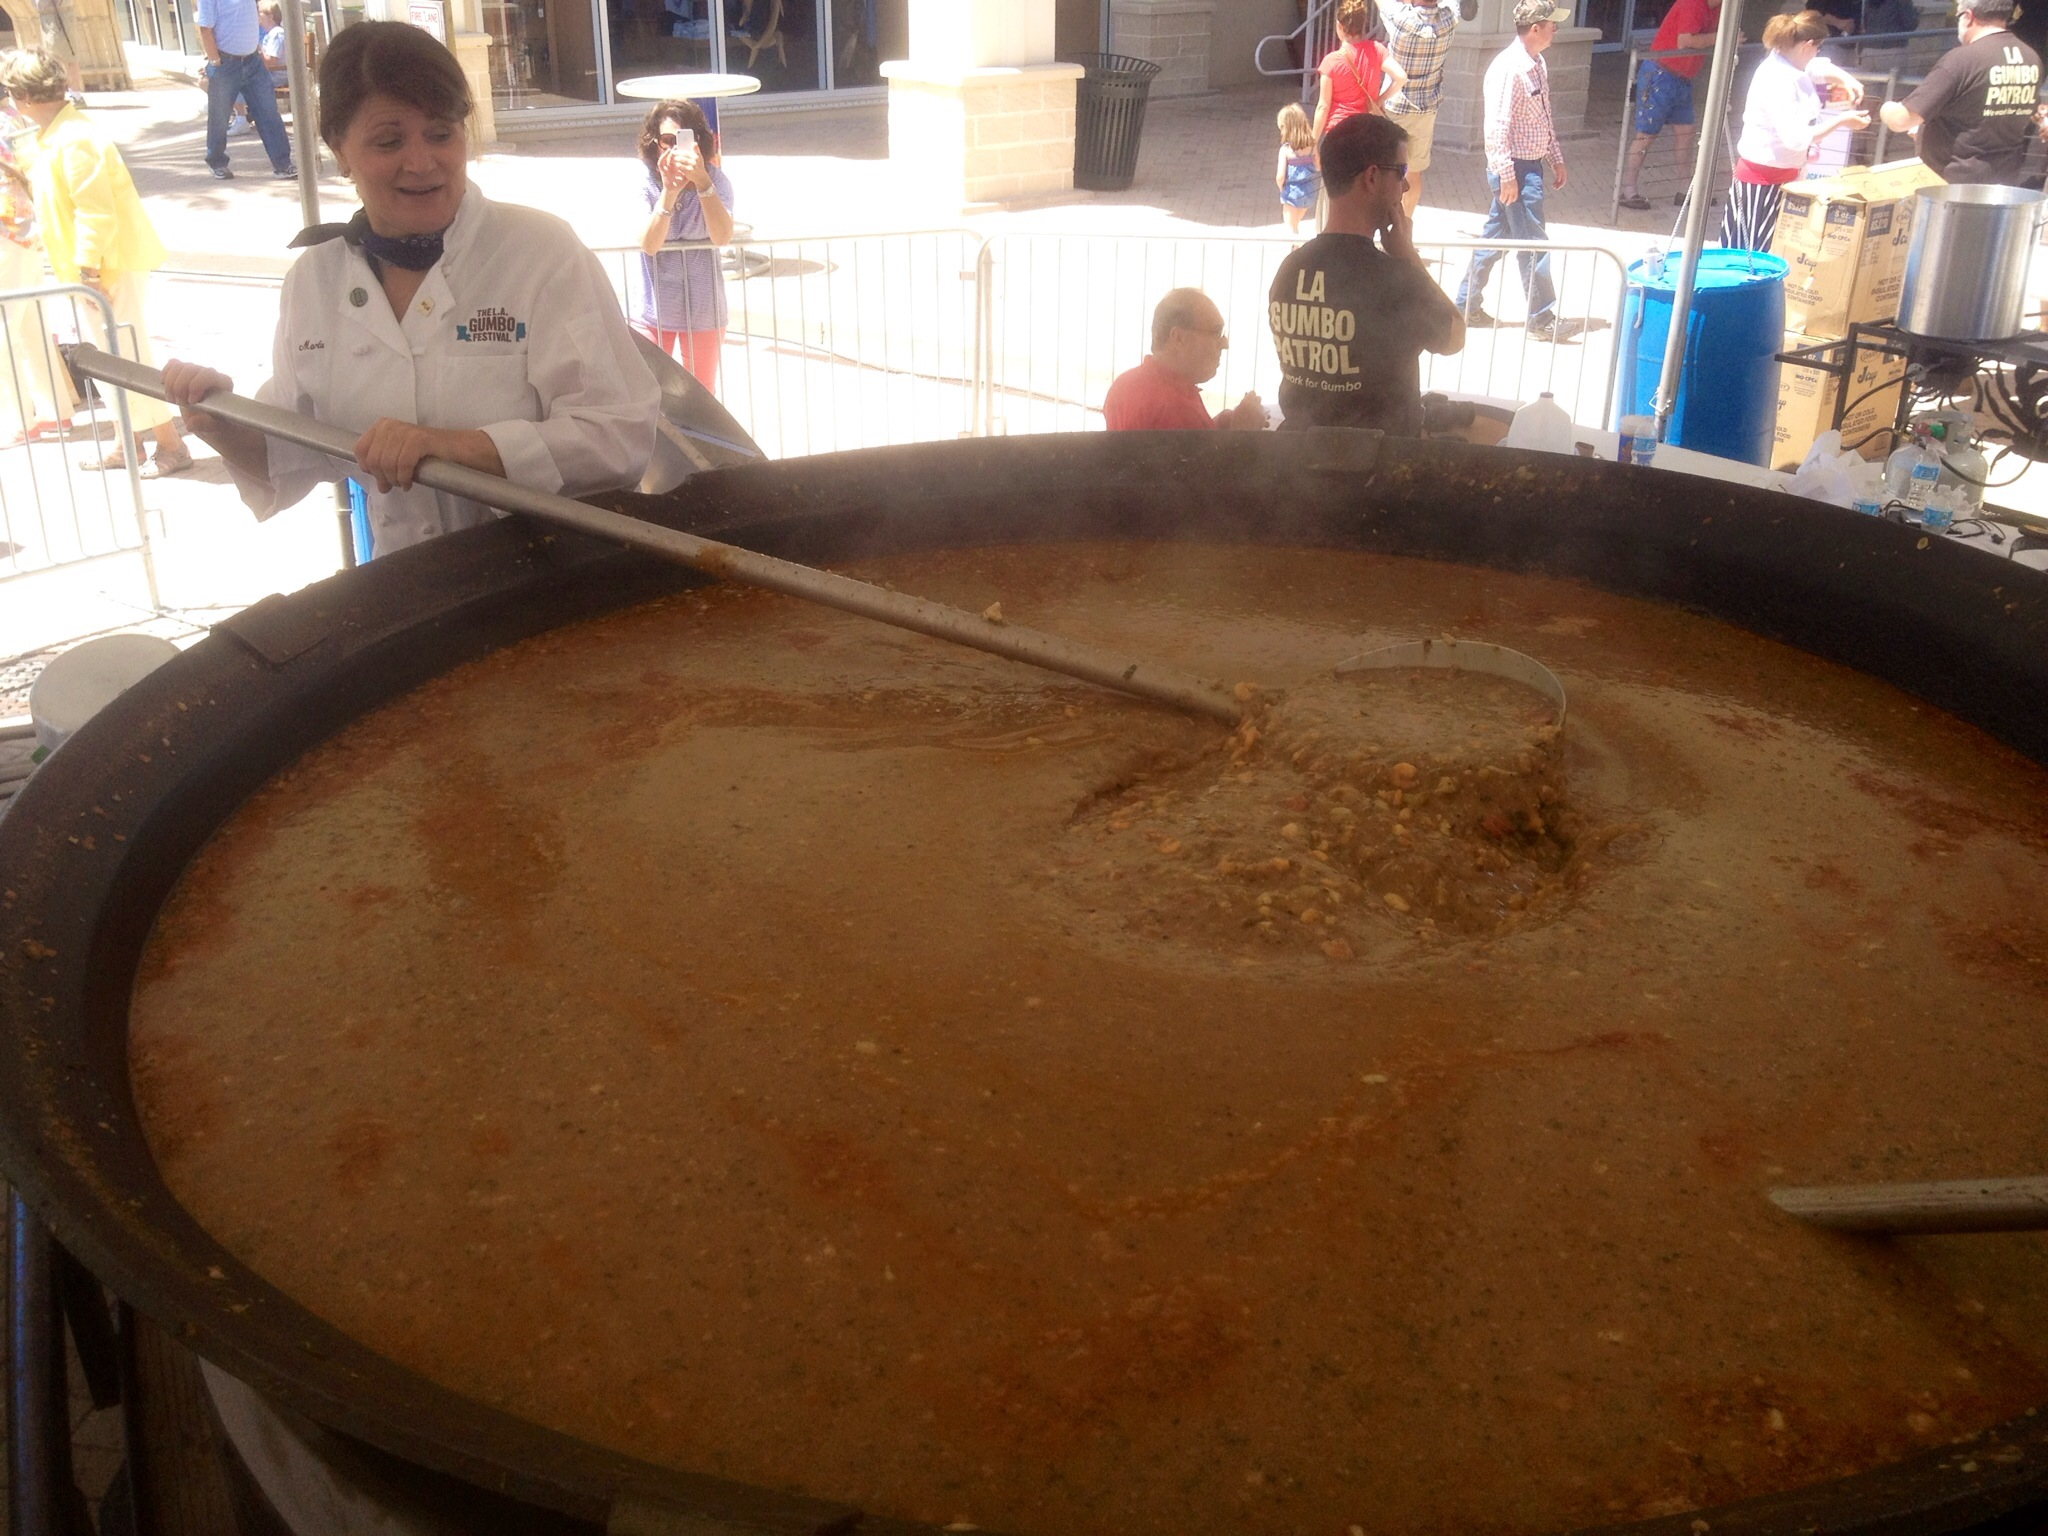 World's largest pot of gumbo